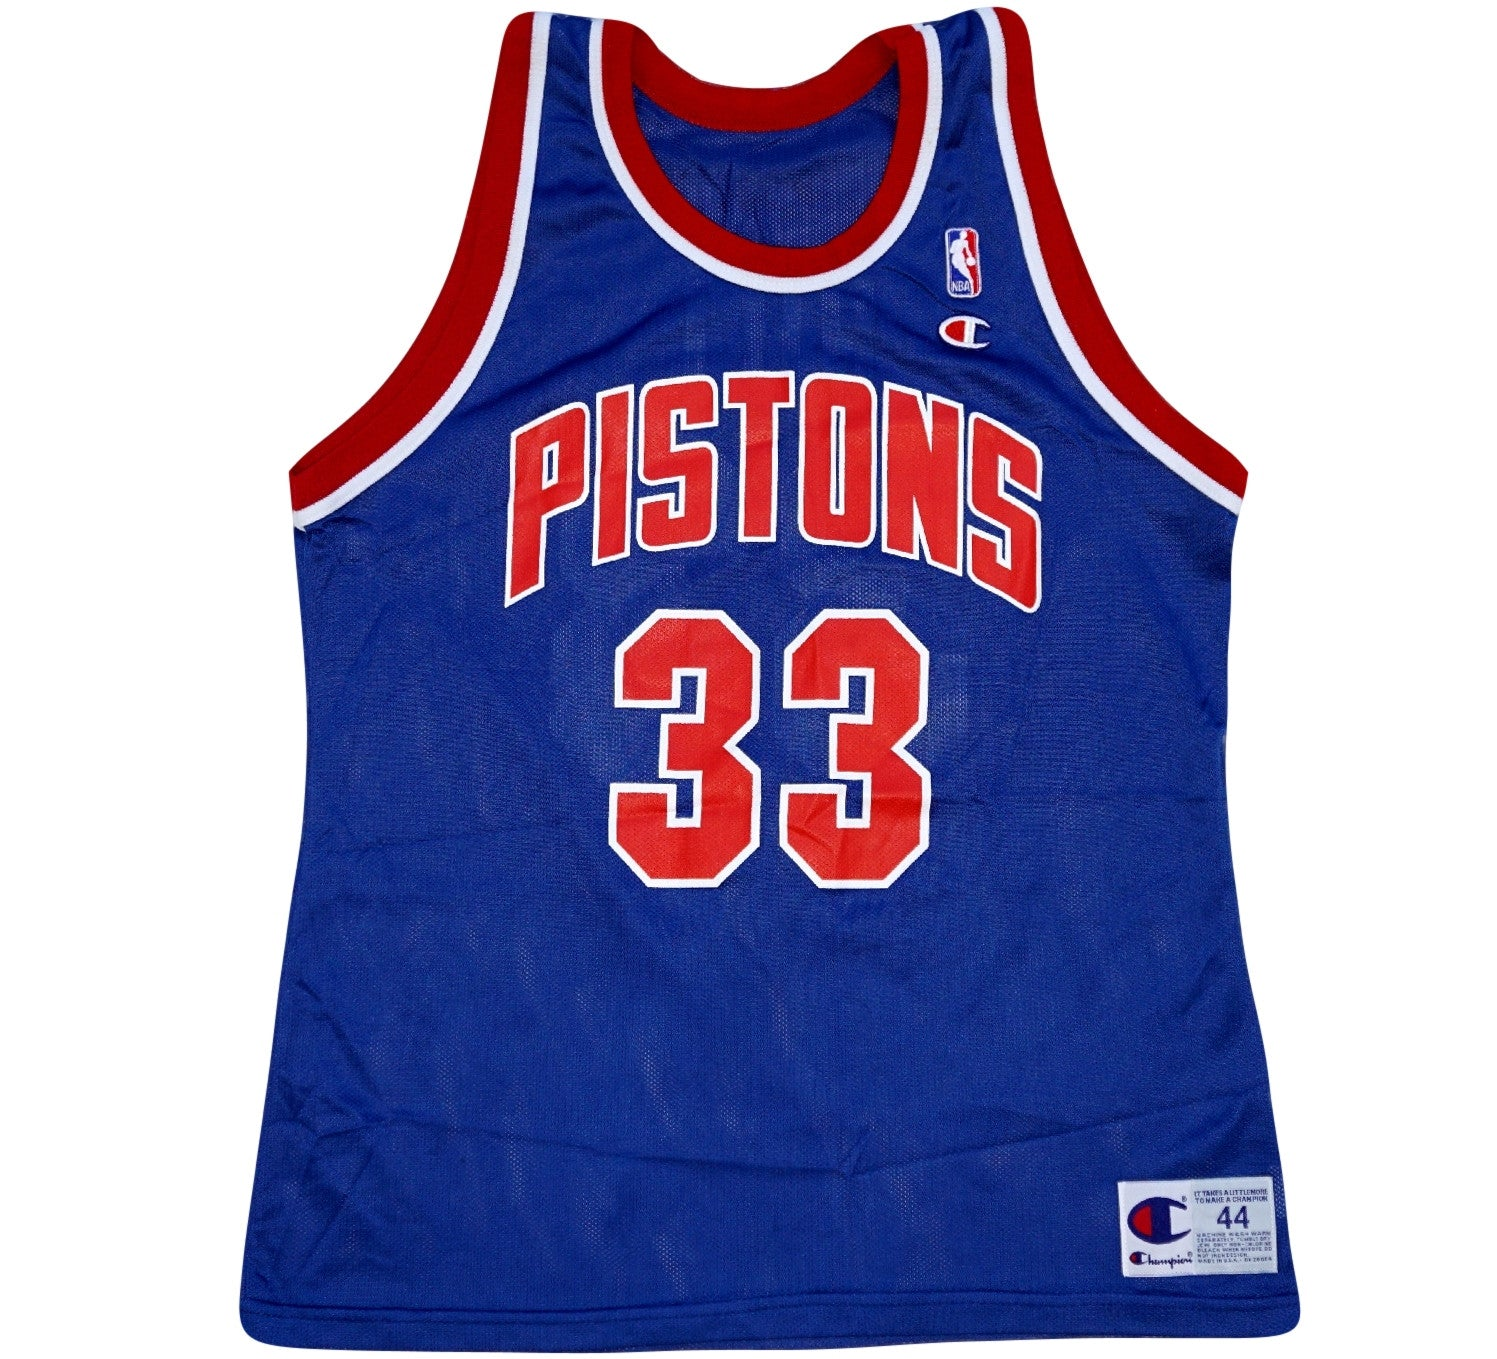 Grant Hill Pistons 90's Jersey - And Still